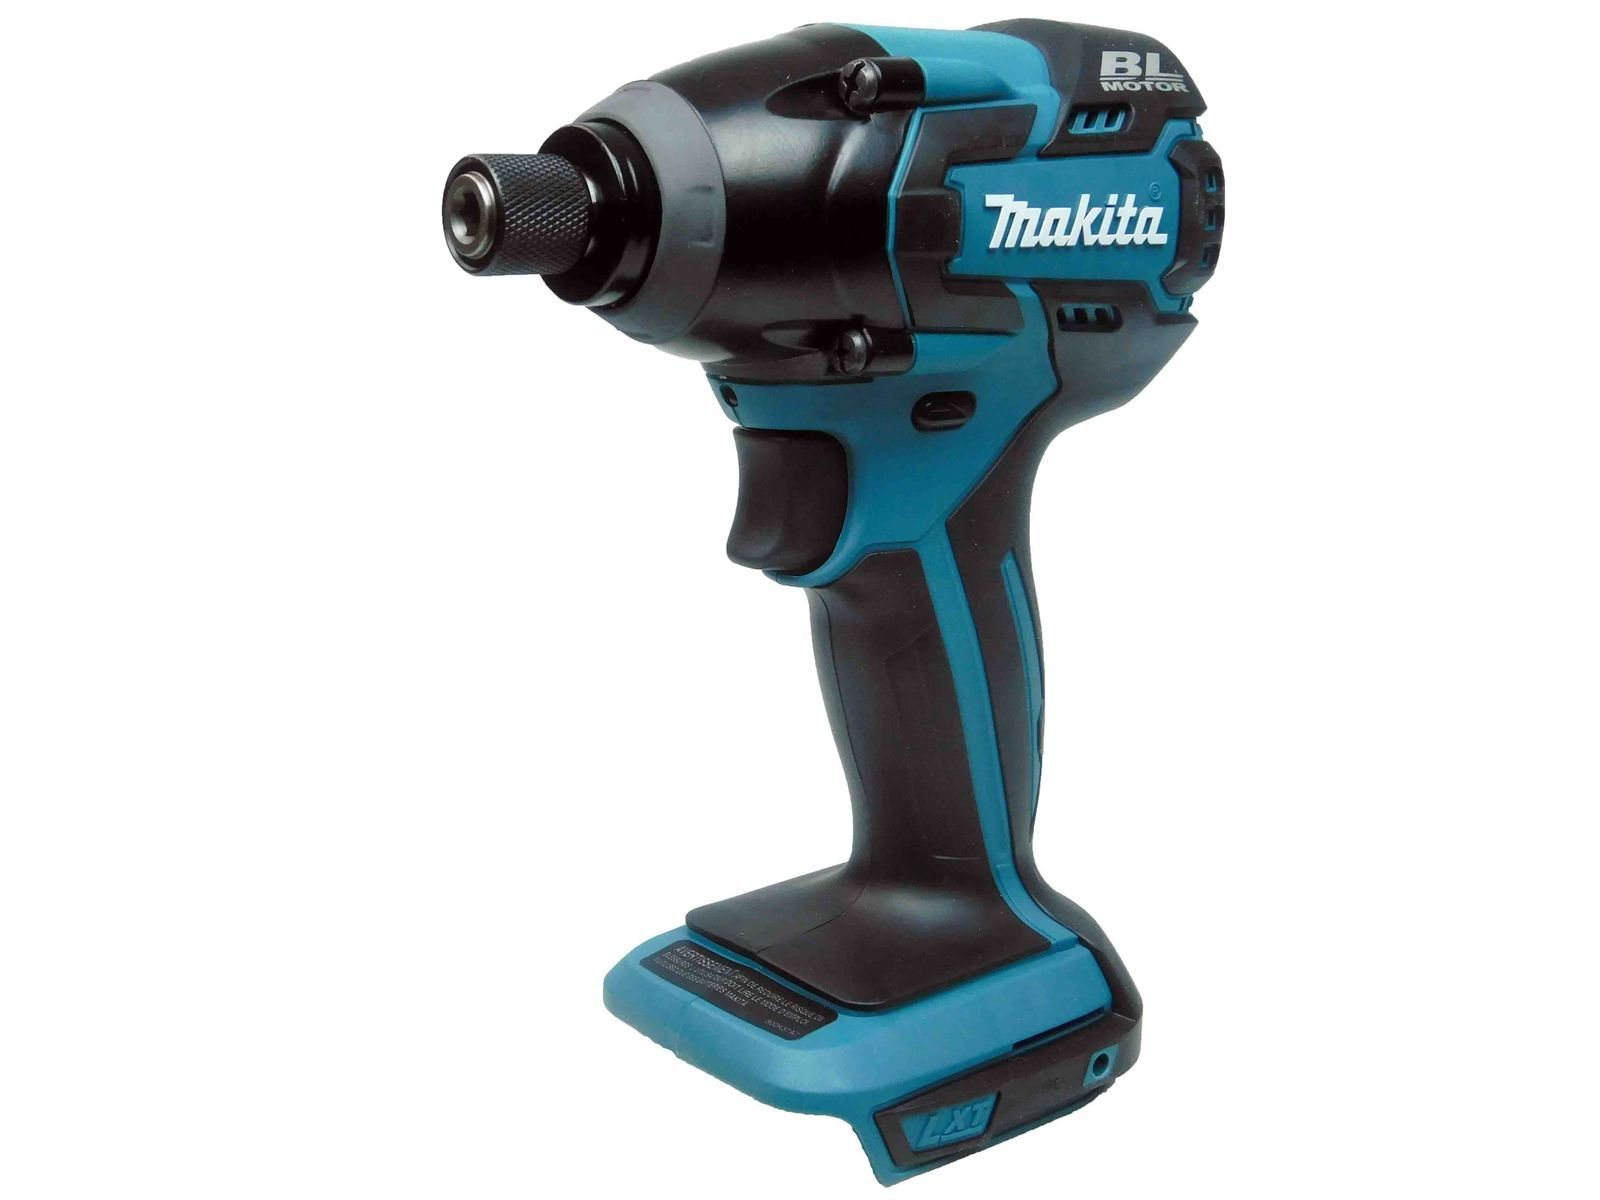 Makita-18V-XDT08-LXT-Lithium-Ion-Brushless-1-4-in.-Cordless-Impact-Driver-image-1